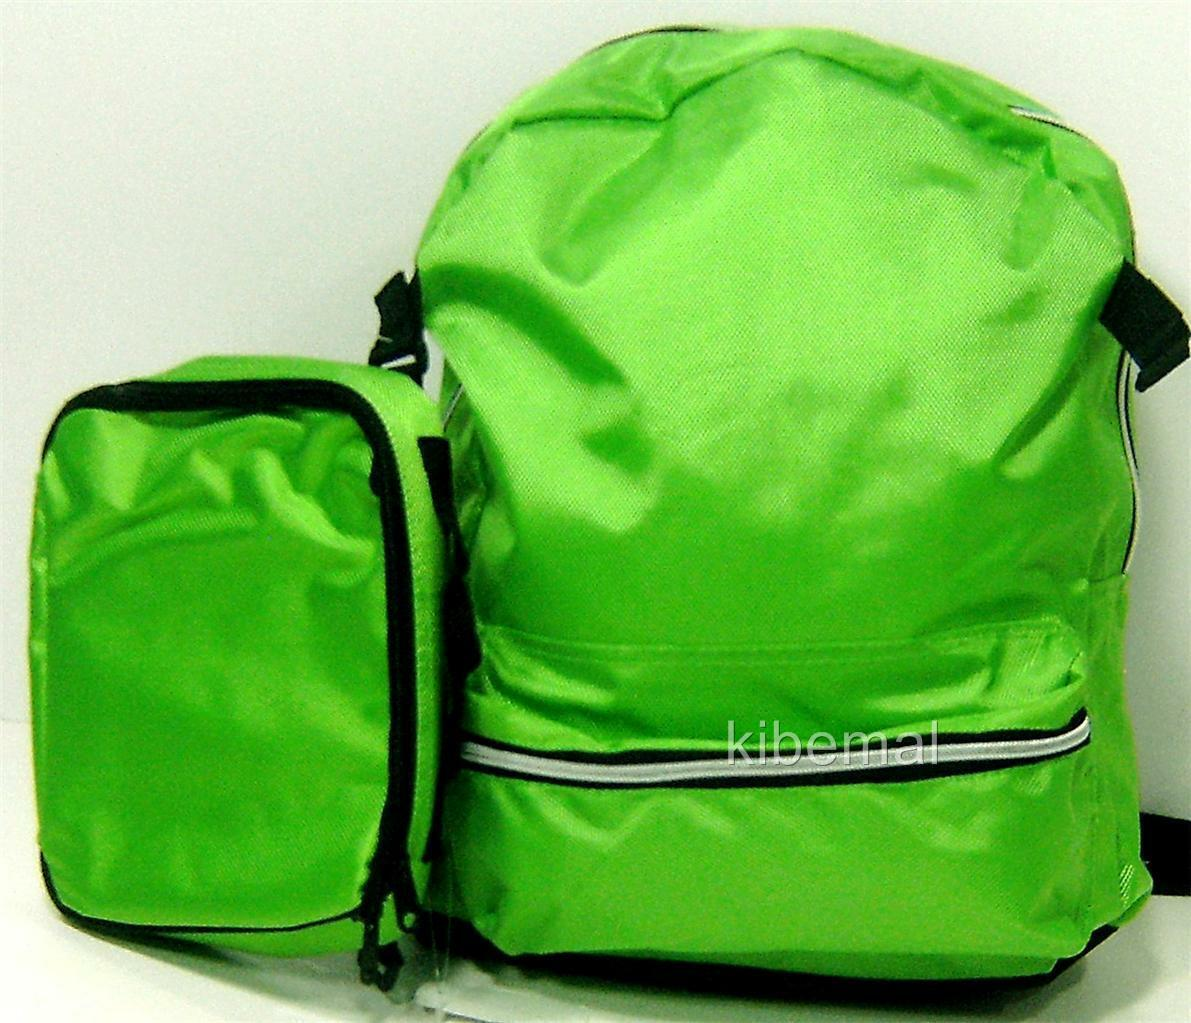 Muted Green Jansport Backpack The Pro Tas Hatchet Field Tan Source Bright Fairway Golf And Print